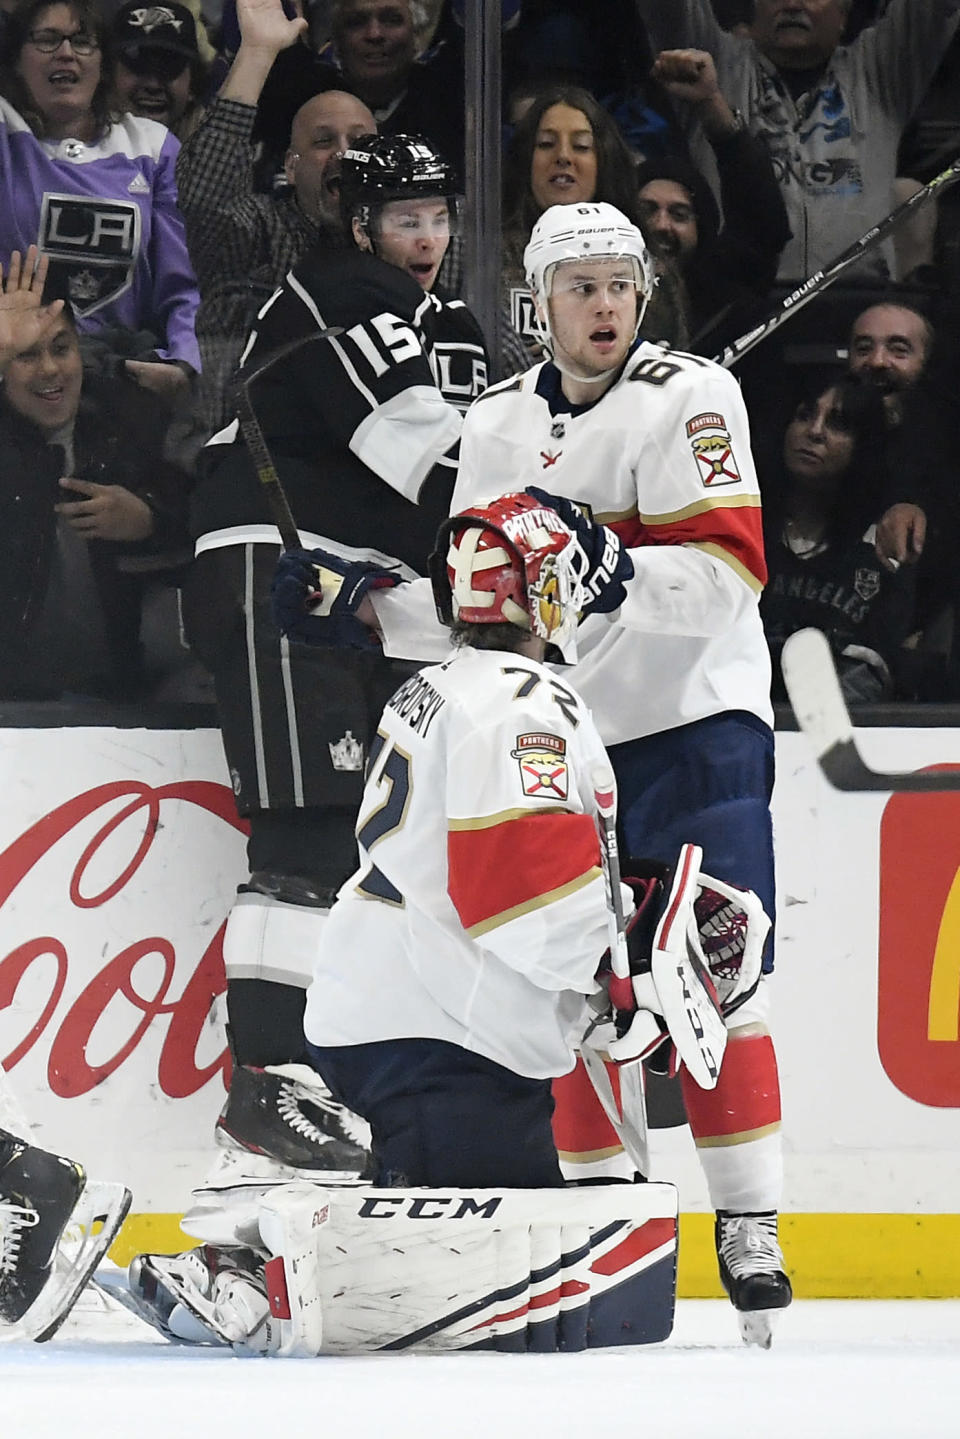 Los Angeles Kings defenseman Ben Hutton, left, celebrates his goal as Florida Panthers goaltender Sergei Bobrovsky, center, kneels on the ice while defenseman Riley Stillman stands by during the third period of an NHL hockey game Thursday, Feb. 20, 2020, in Los Angeles. The Kings won 5-4. (AP Photo/Mark J. Terrill)